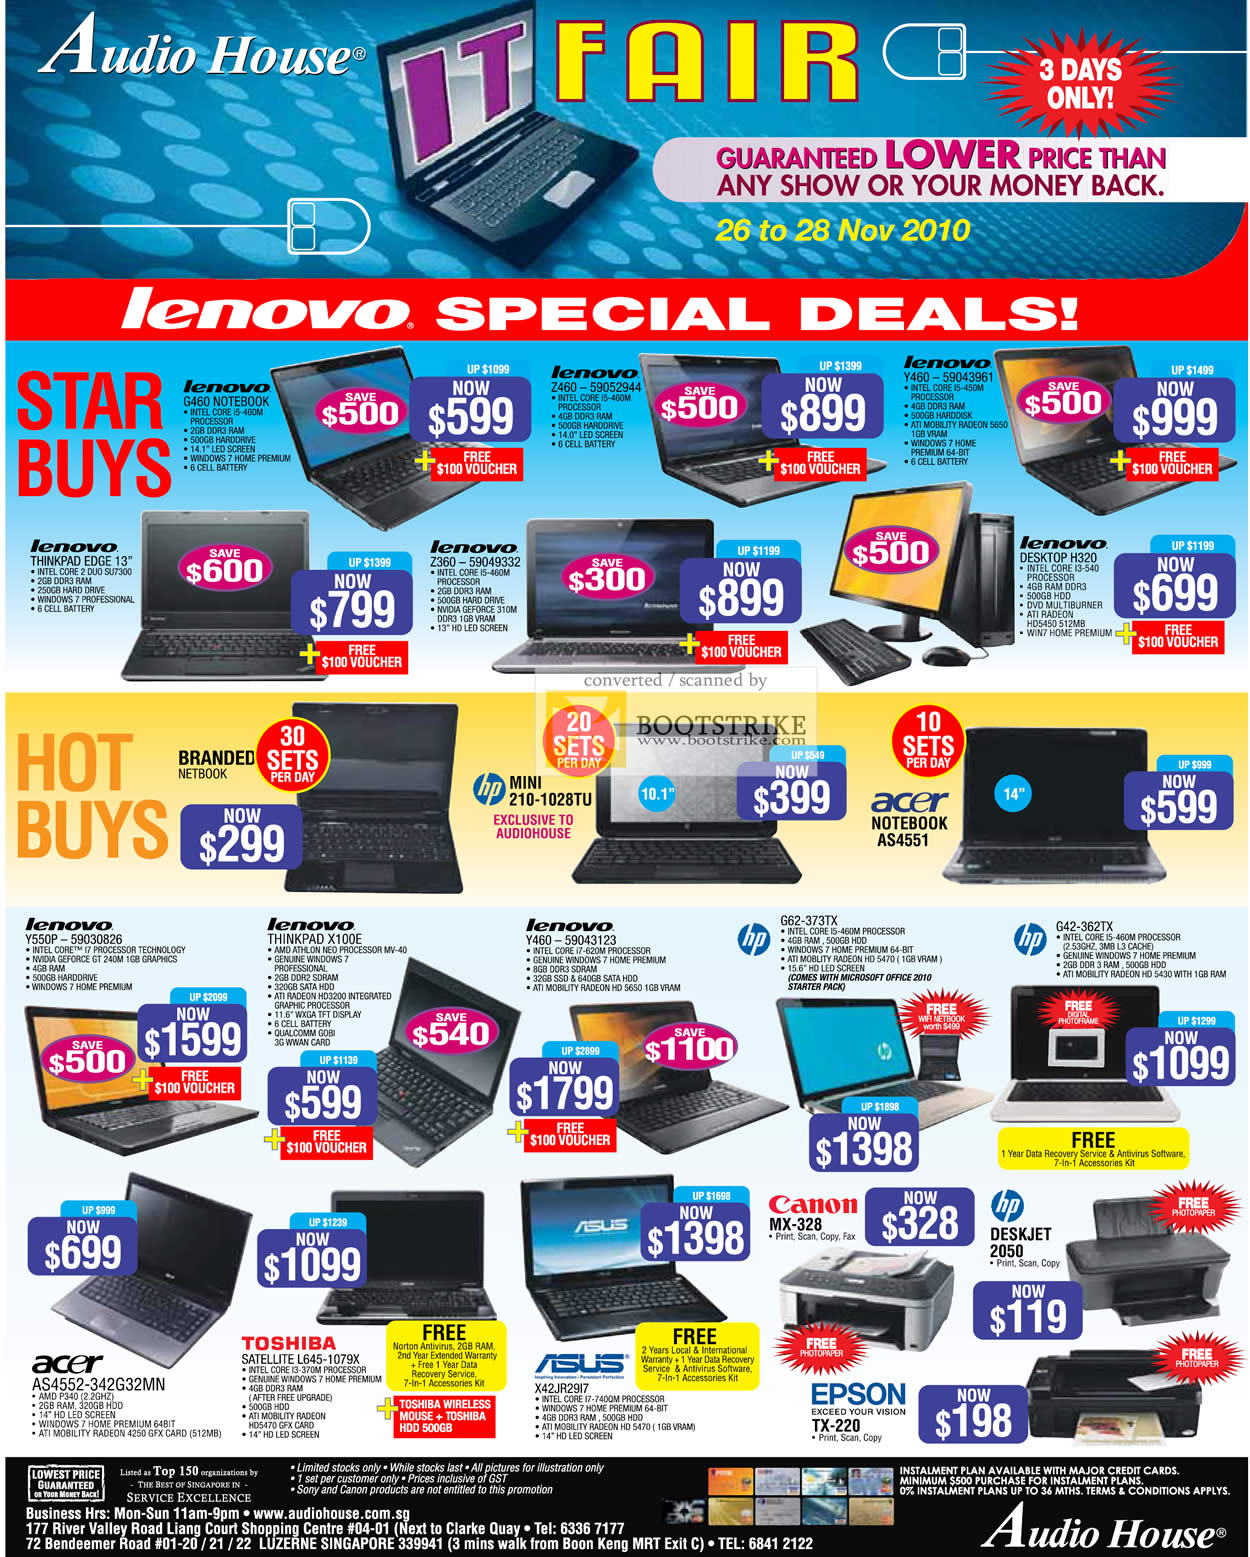 Sitex 2010 price list image brochure of Audio House Lenovo Notebooks Thinkpad Edge G460 Z360 Z460 Y460 H320 X100E HP Mini 210 Canon ASUS Printers